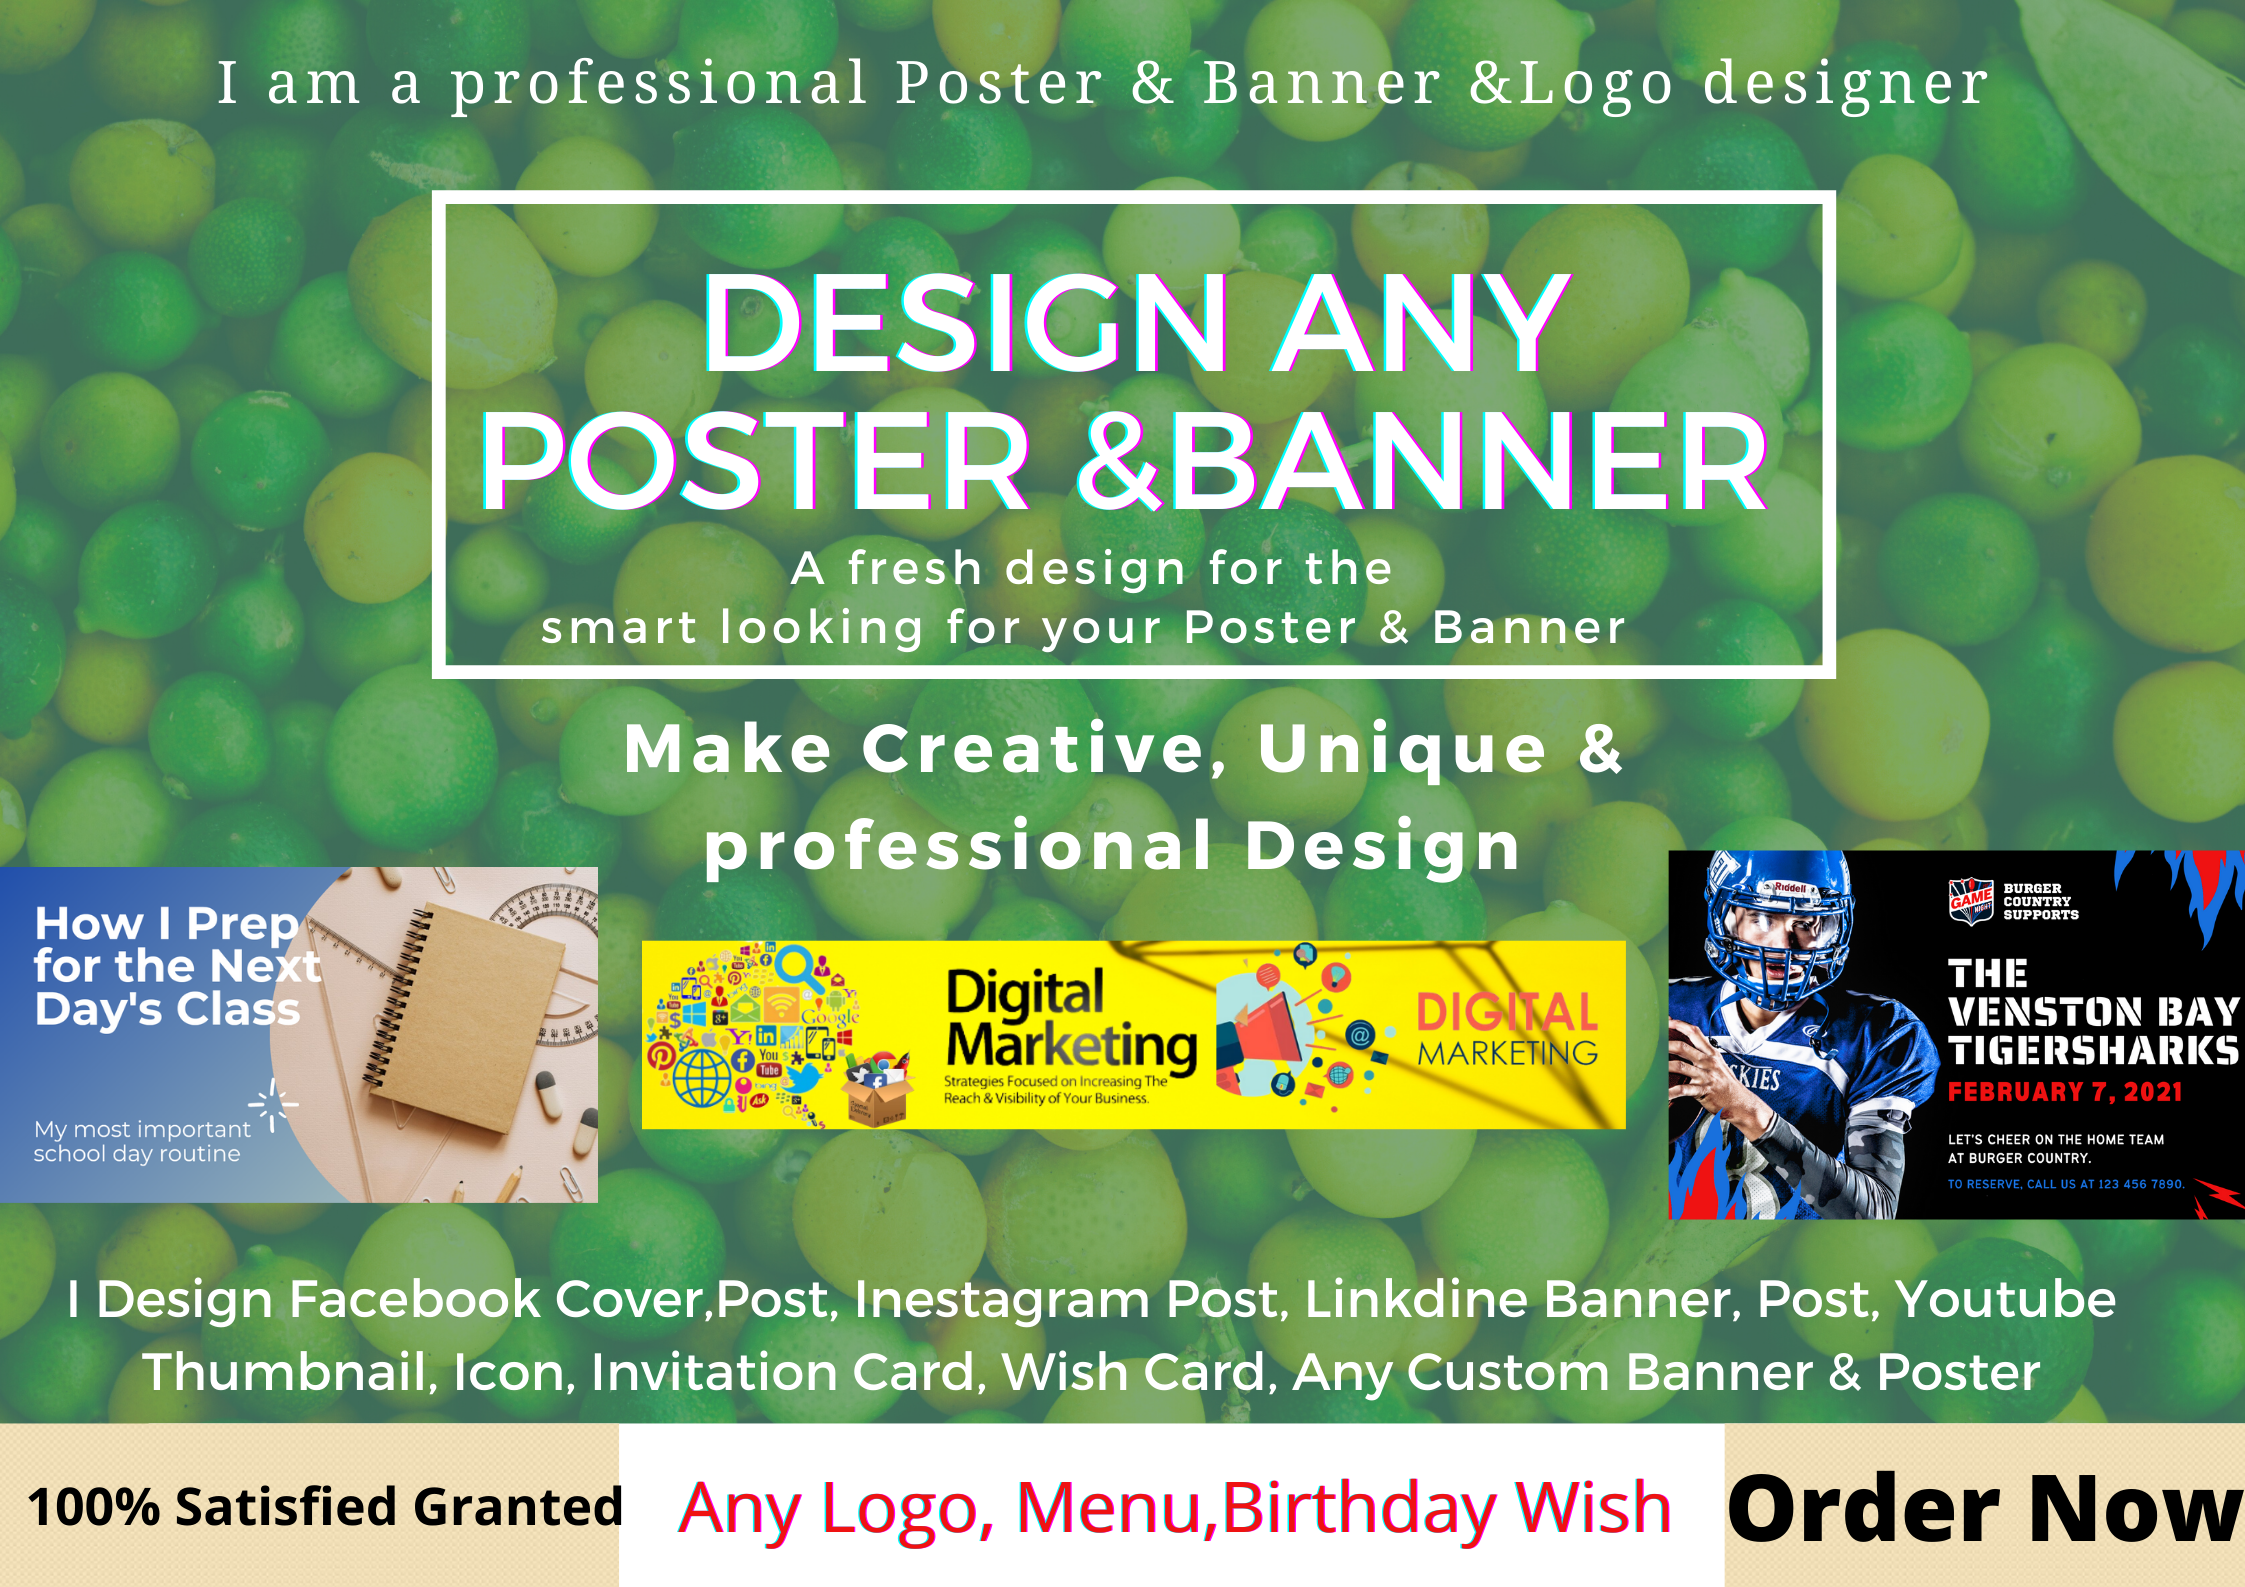 I,ll Design Unique & Professional Any Social Media Poster, Cover, And Banner & Any Logo